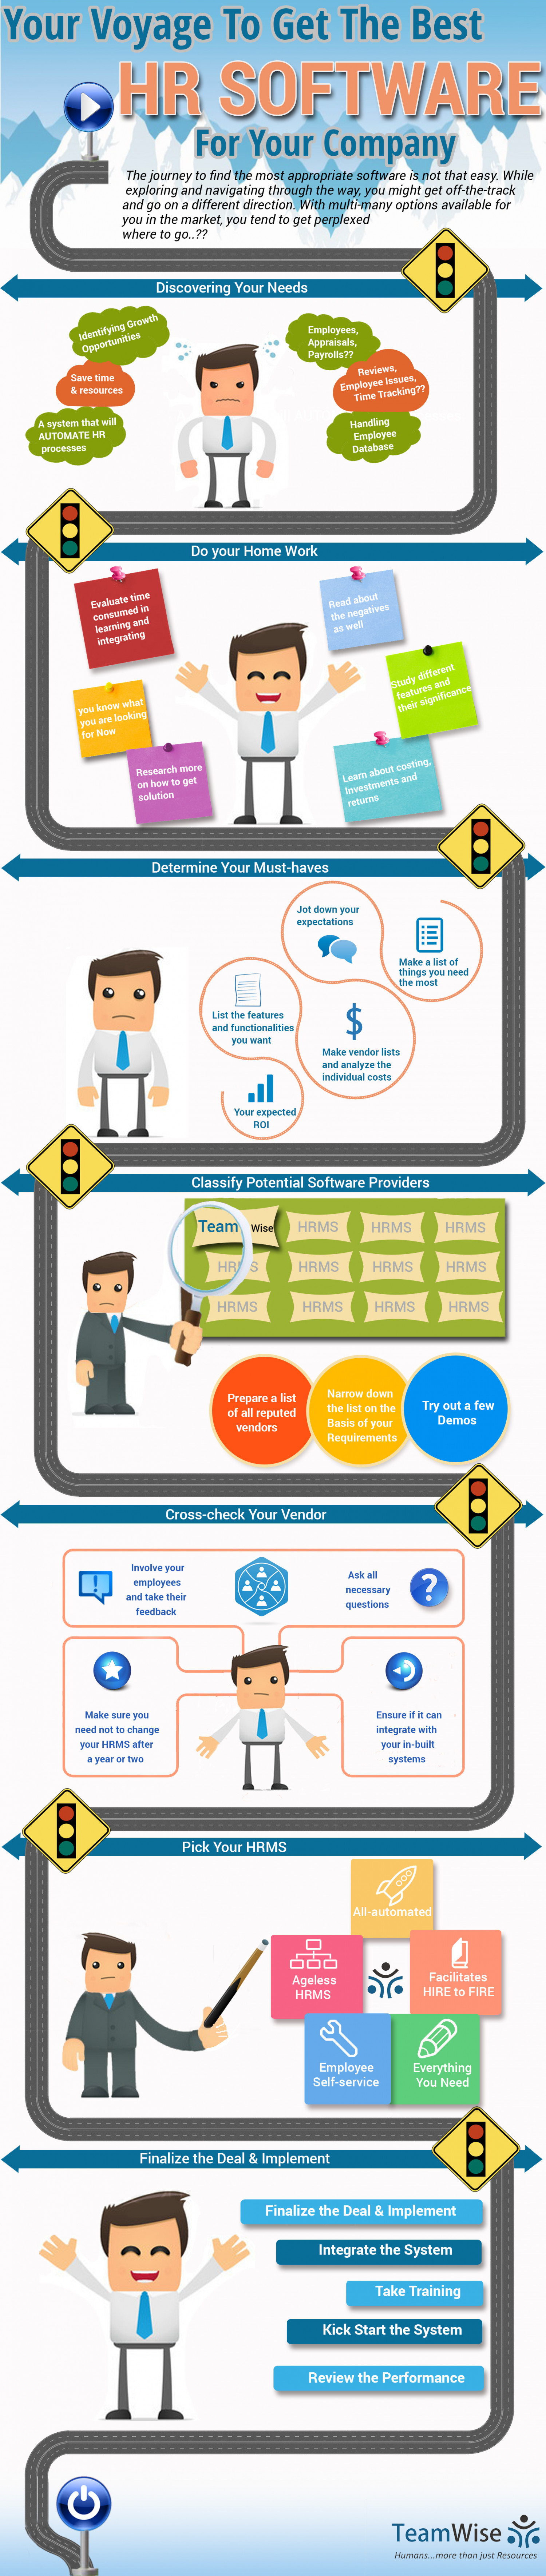 Your Voyage To Get The Best HR Software !! Infographic